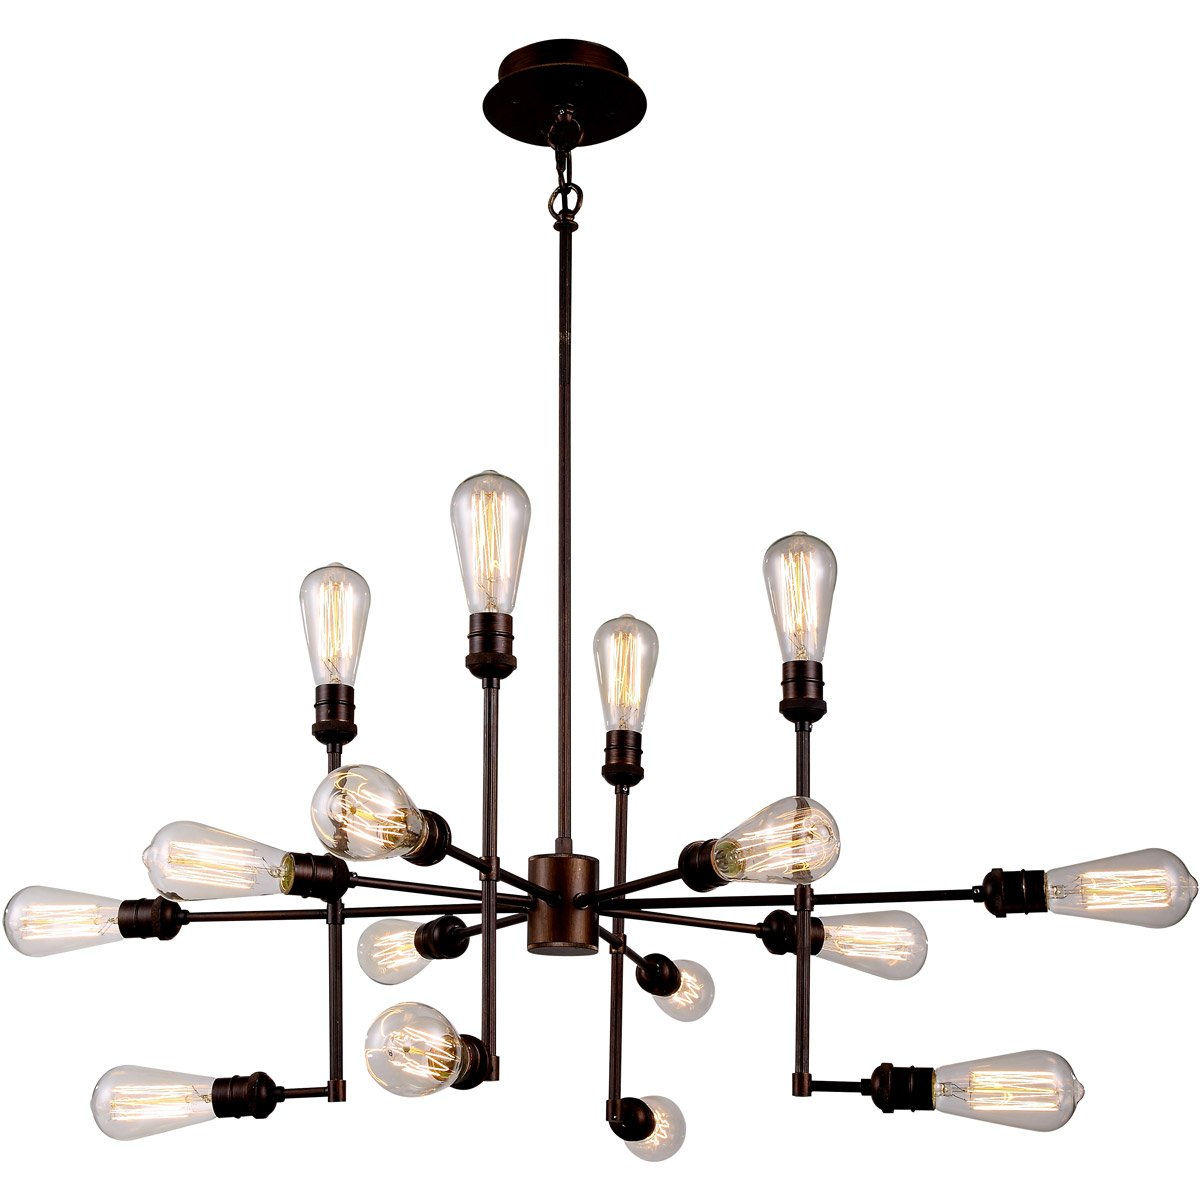 Ophelia 43 Island Pendant With 15 Lights - Cocoa Brown Finish Pendant